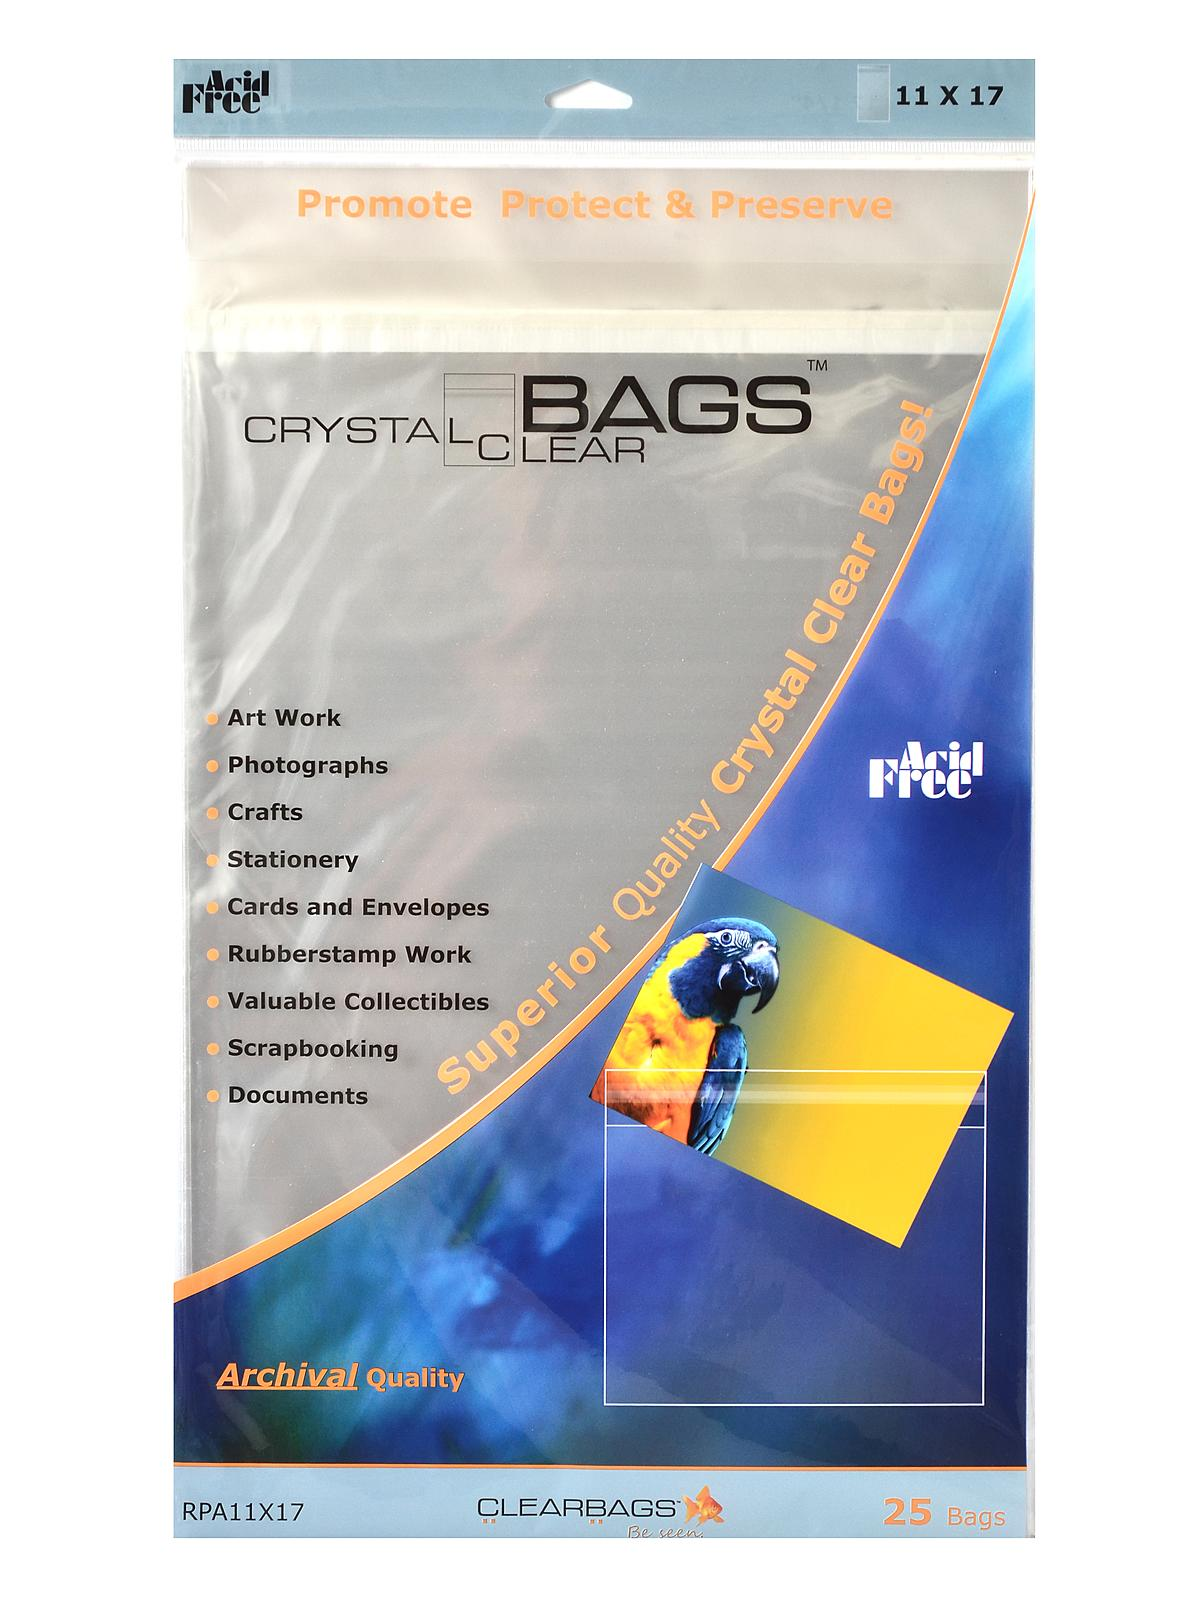 Clearbags Crystal Clear Photography Amp Art Bags Misterart Com